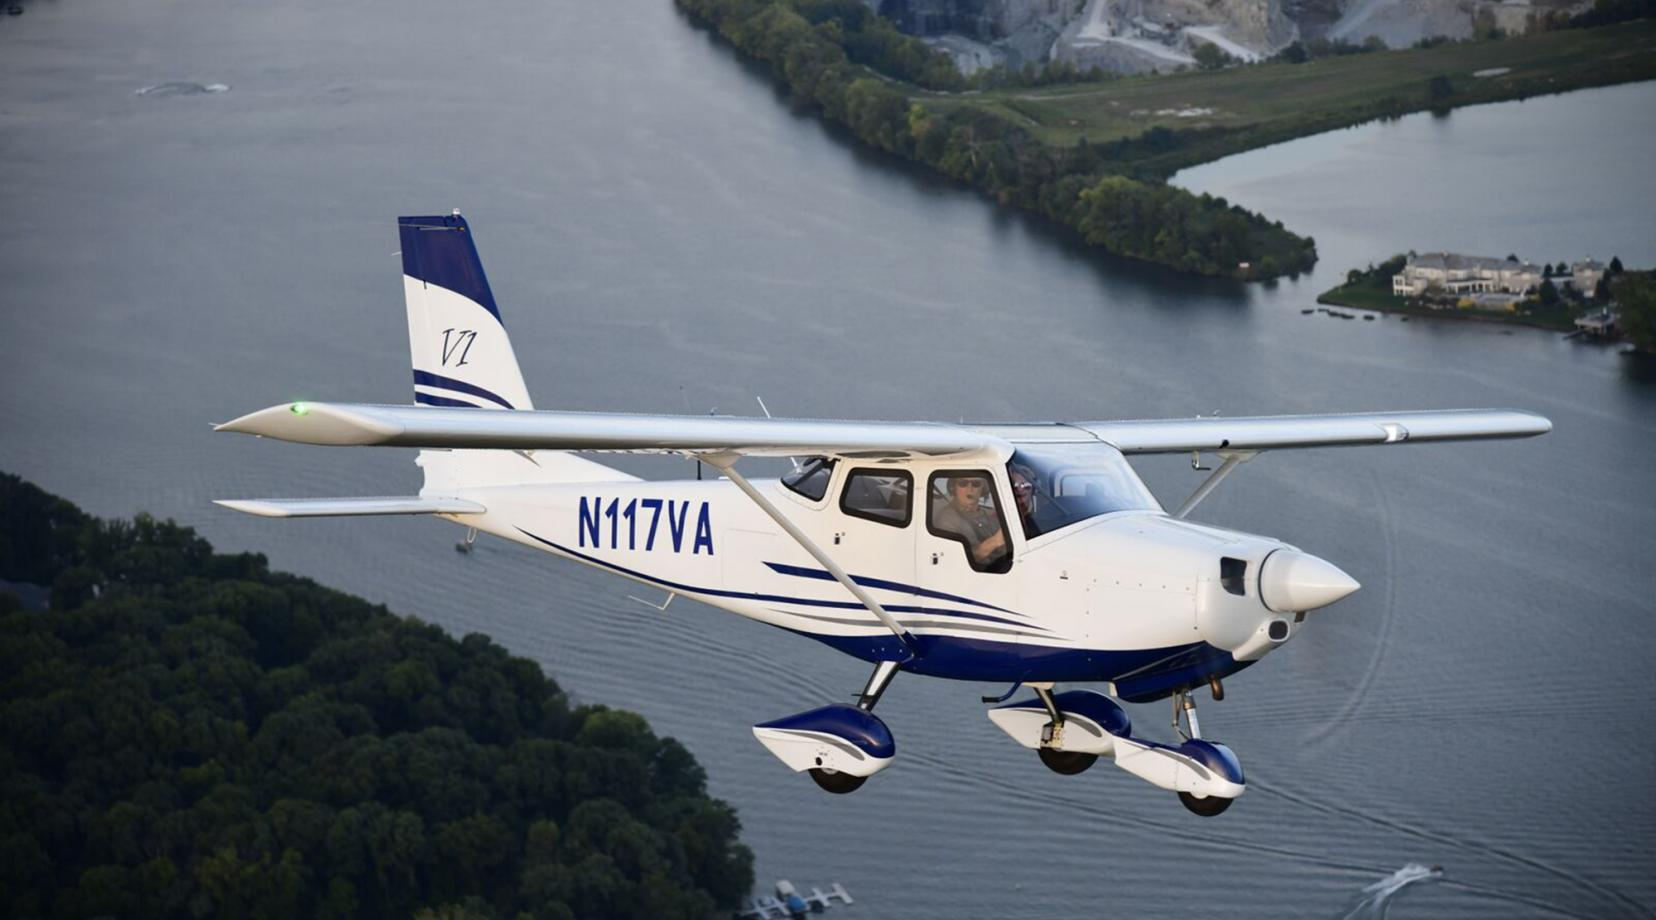 The University's Aviation Program is expanding its fleet with 10 of the pictured 10 Vulcanair V1.0 aircraft.